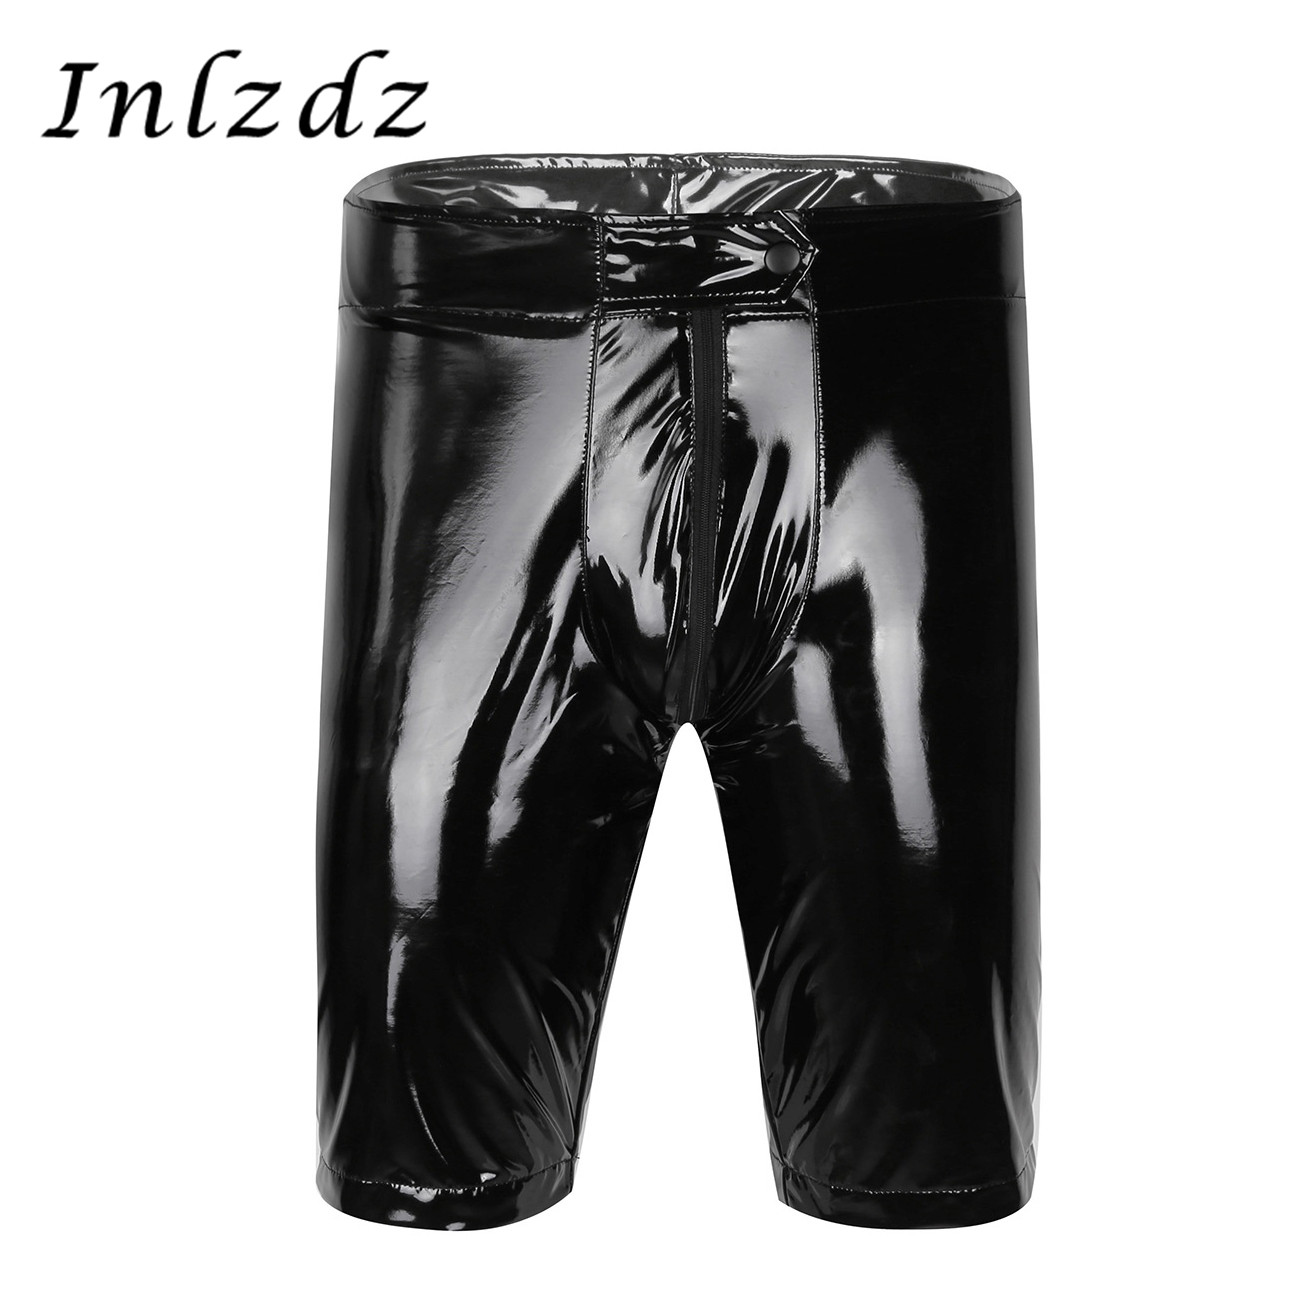 Mens Welook Patent Leather Zippered Open Crotch Boxer Shorts Half Pants With Bulge Pouch